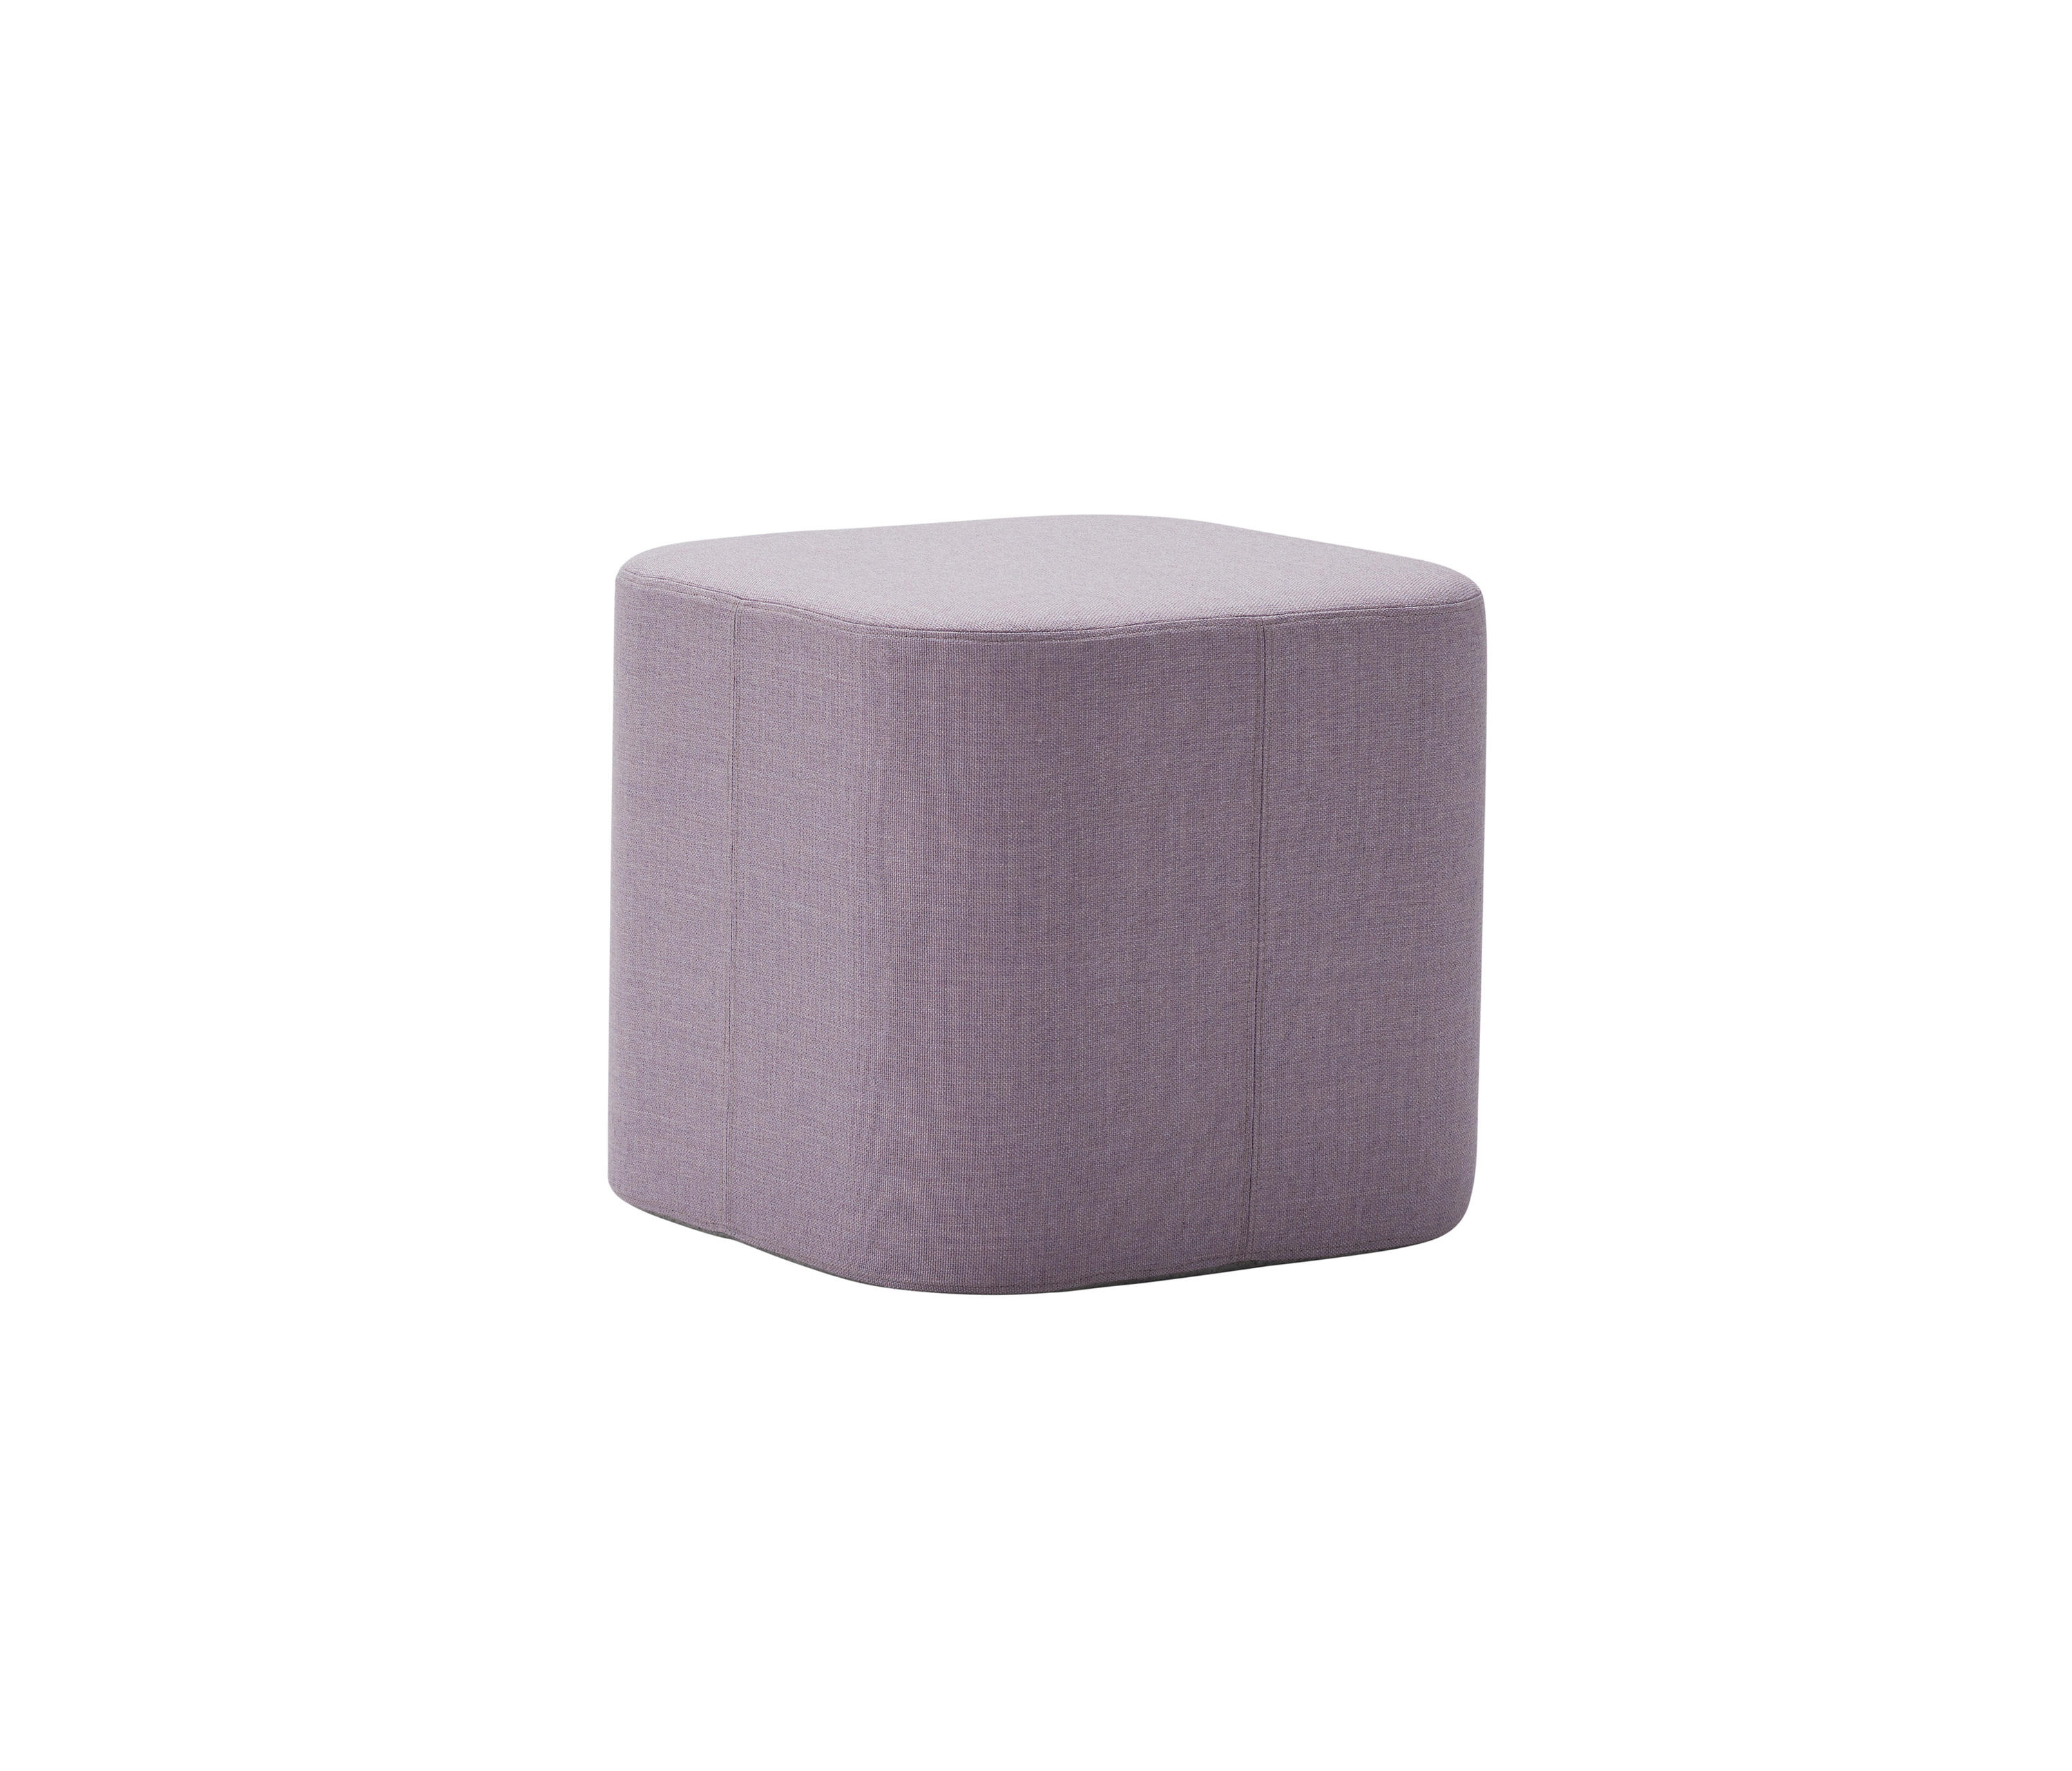 softsquare pouf by softline as  poufs . softsquare pouf  poufs from softline as  architonic